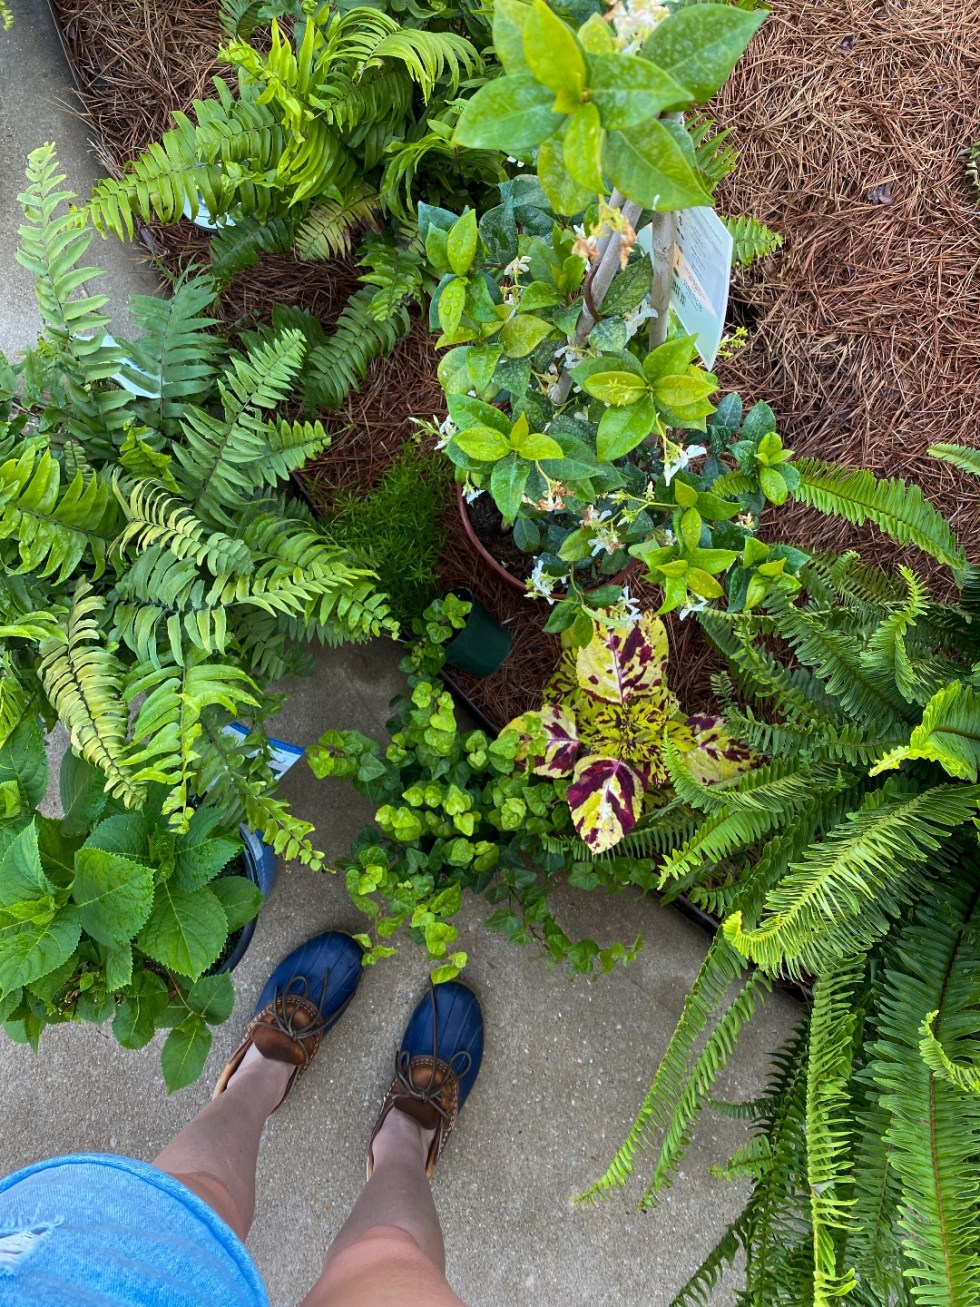 5 Spring Planting Tips with Fairview Garden Center - I'm Fixin' To - @imfixintoblog |Best Plants to Plant in Spring by popular NC lifestyle blog: image of ferns at the Fairview Garden Center.